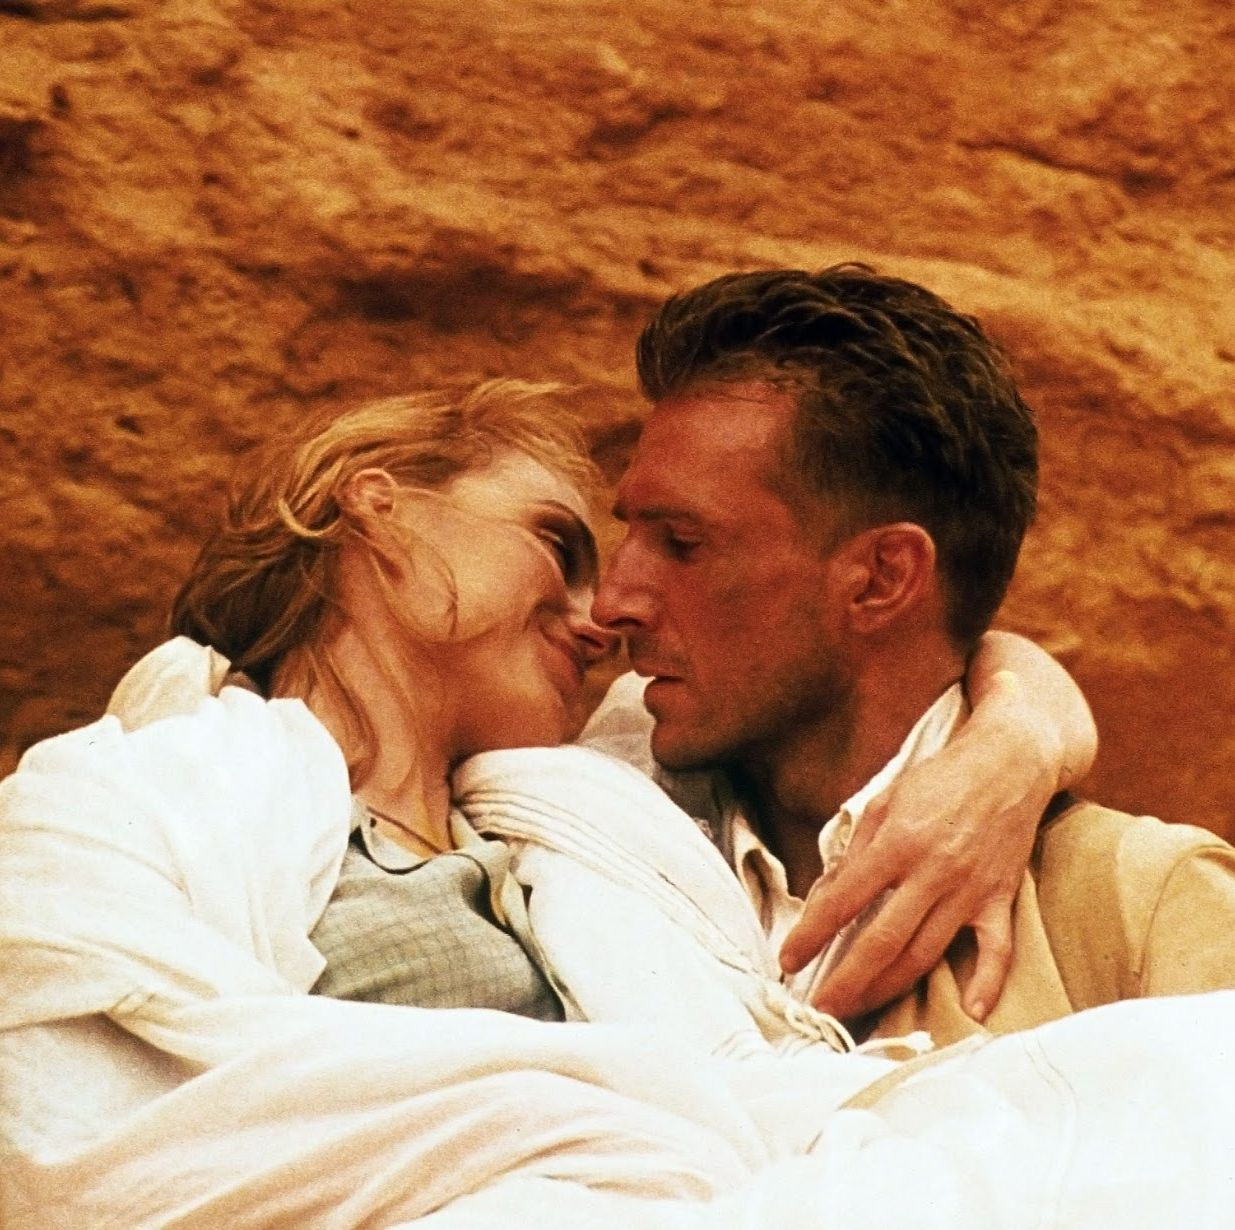 The English Patient The Oscar-winning romantic epic stars Ralph Fiennes as the titular character, a badly burned man who recounts the story of his forbidden love affair with a married woman during WWII.